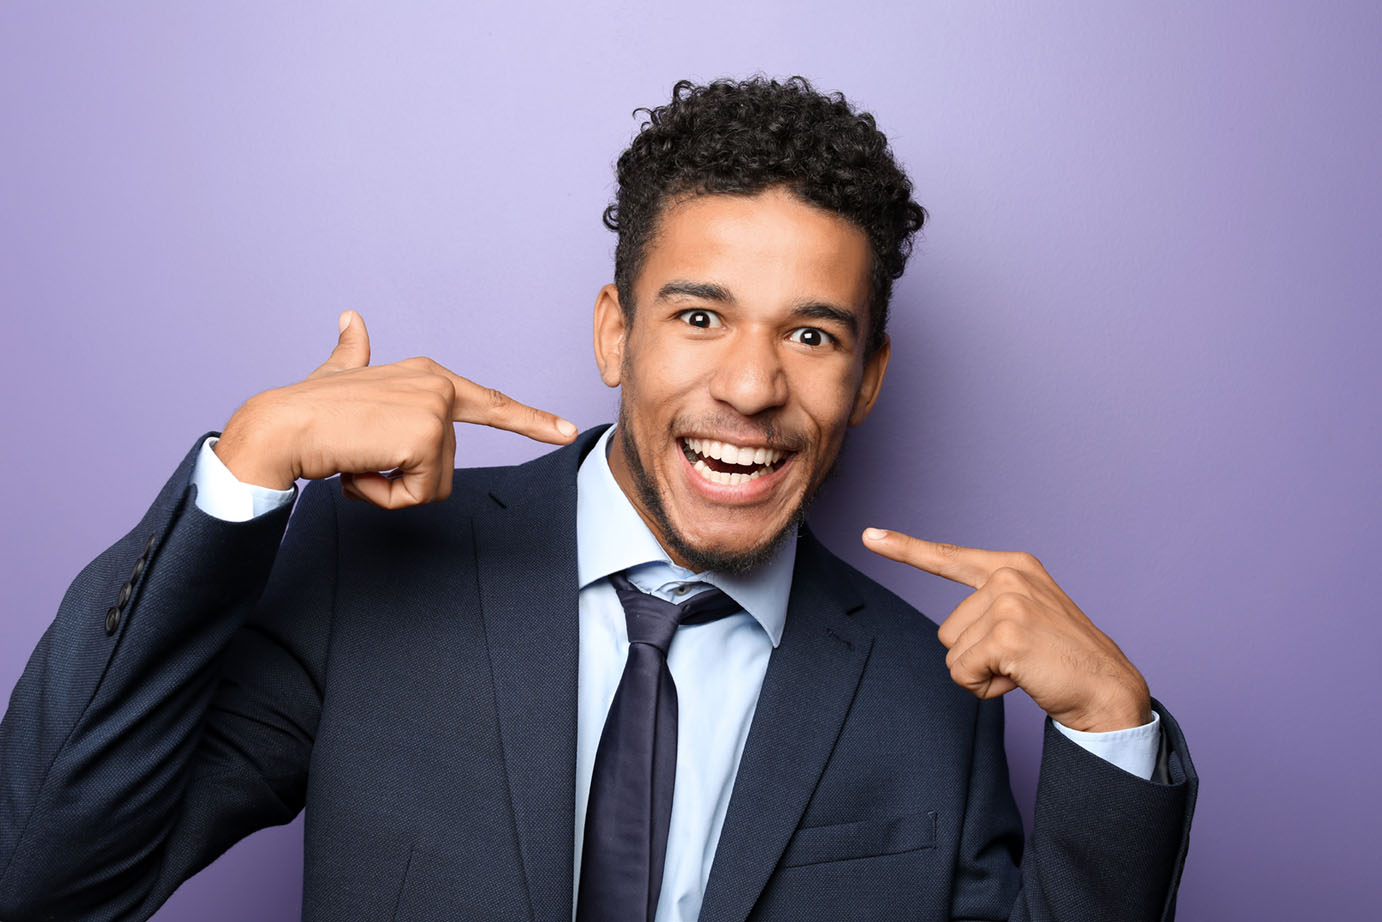 Portrait of happy African-American businessman on color background